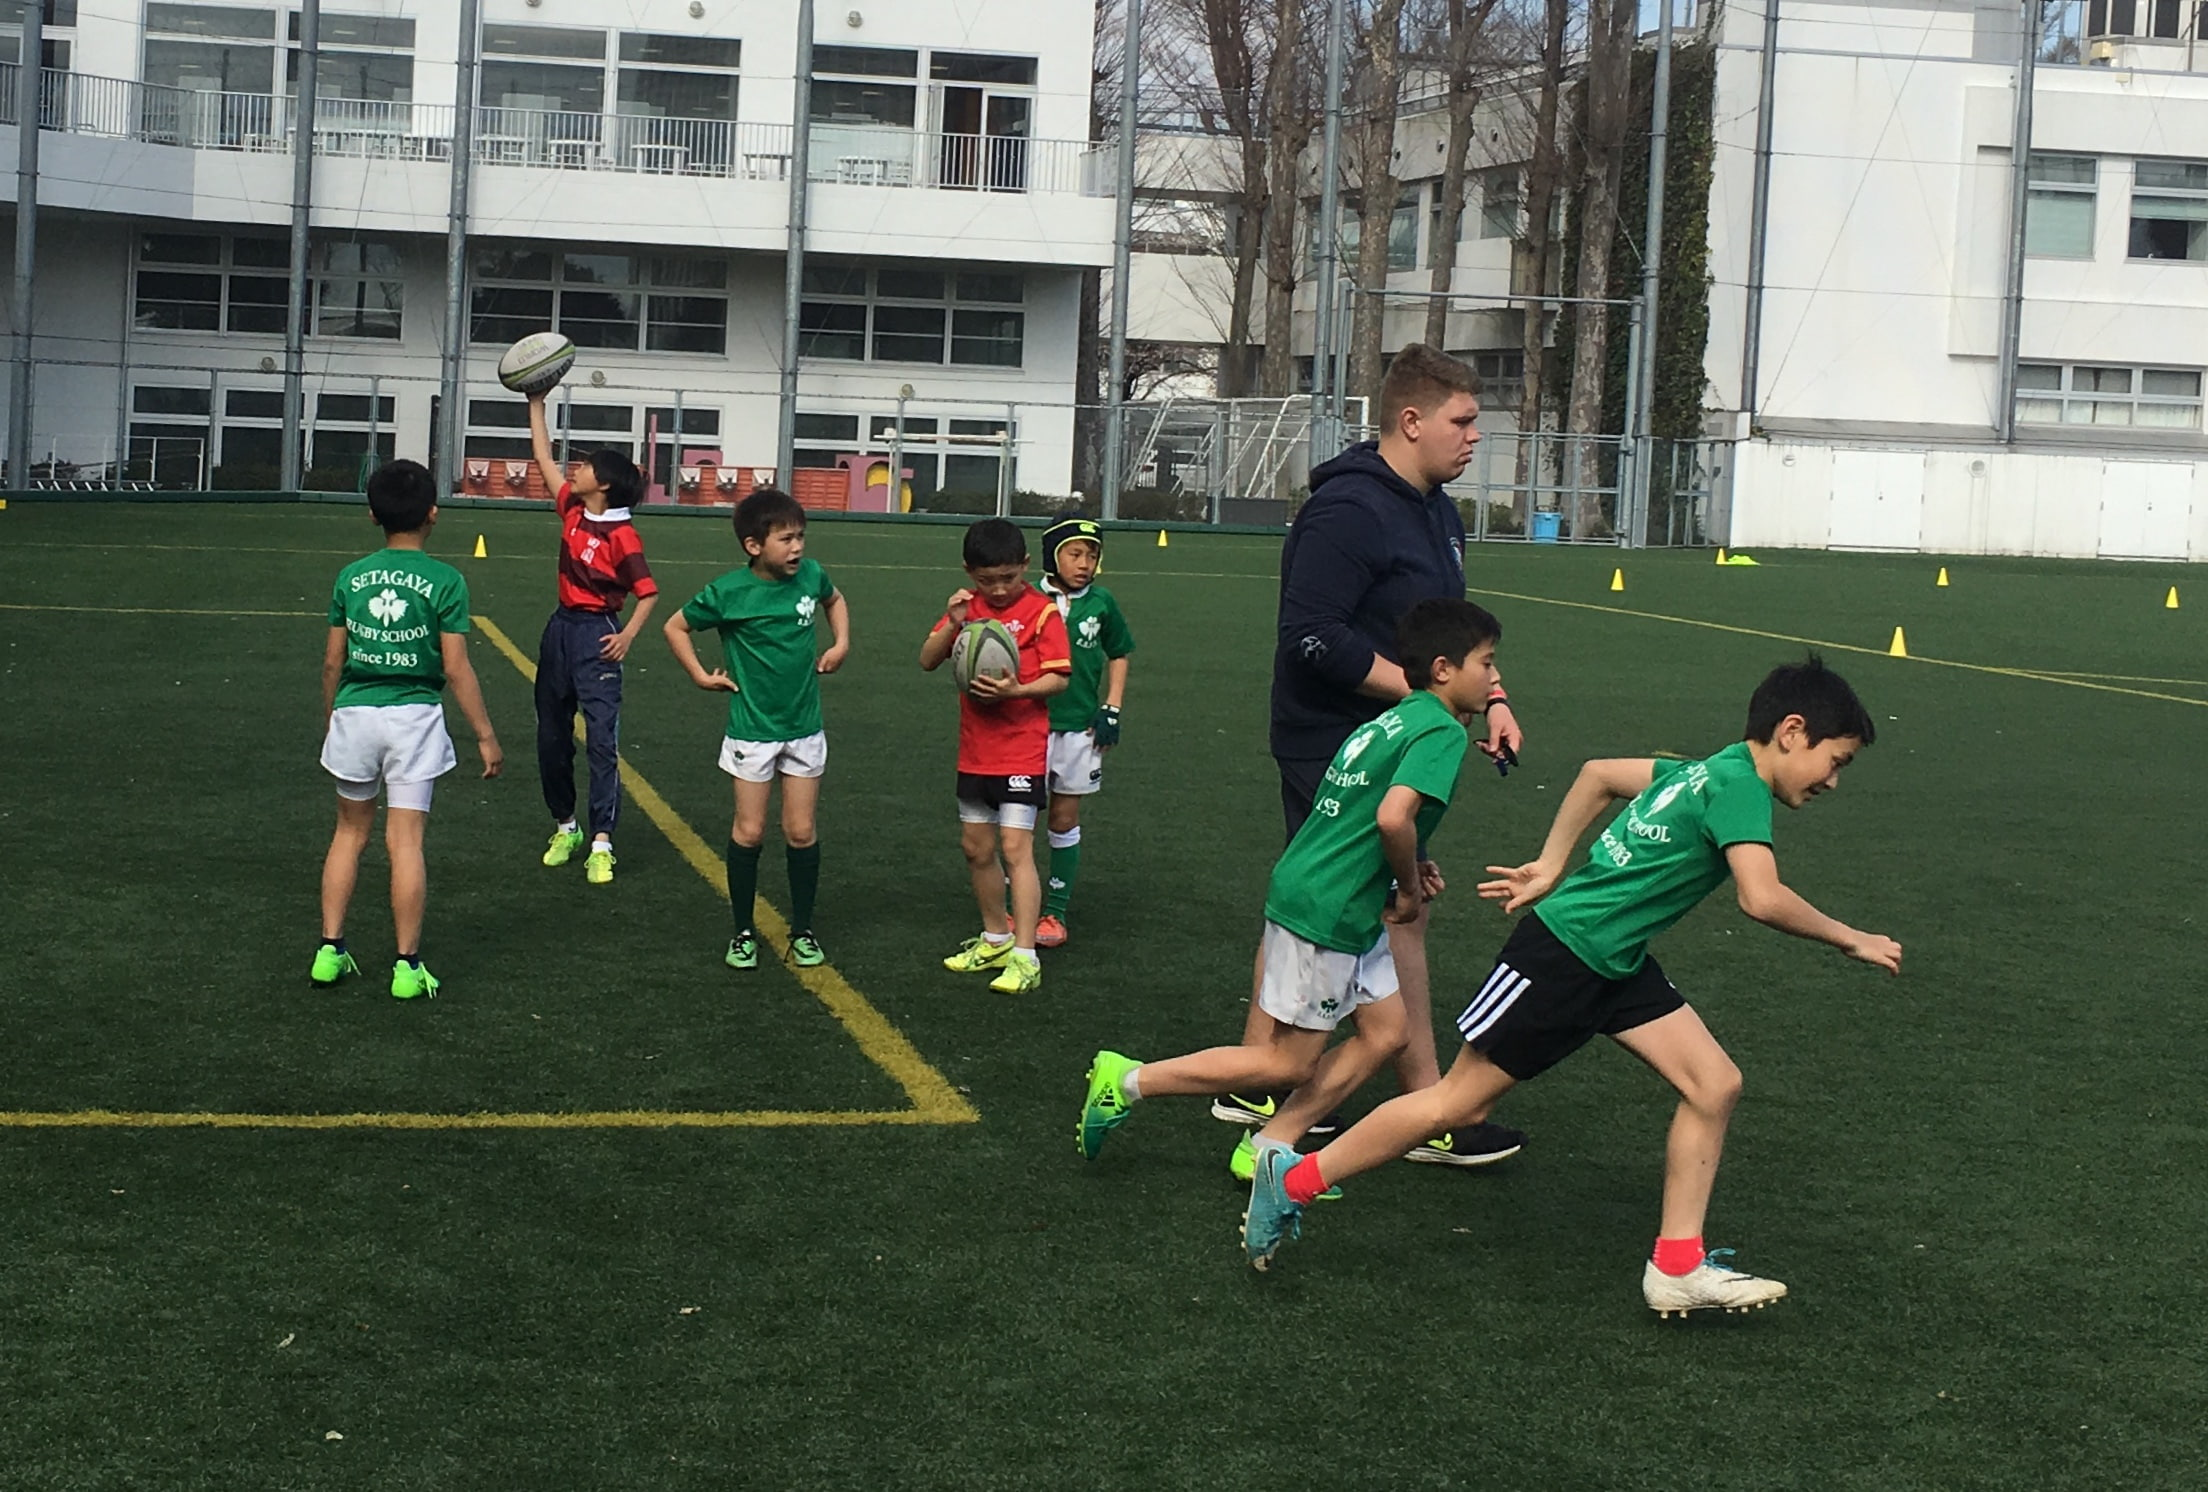 Elementary Boys Participating in a Rugby Clinic.